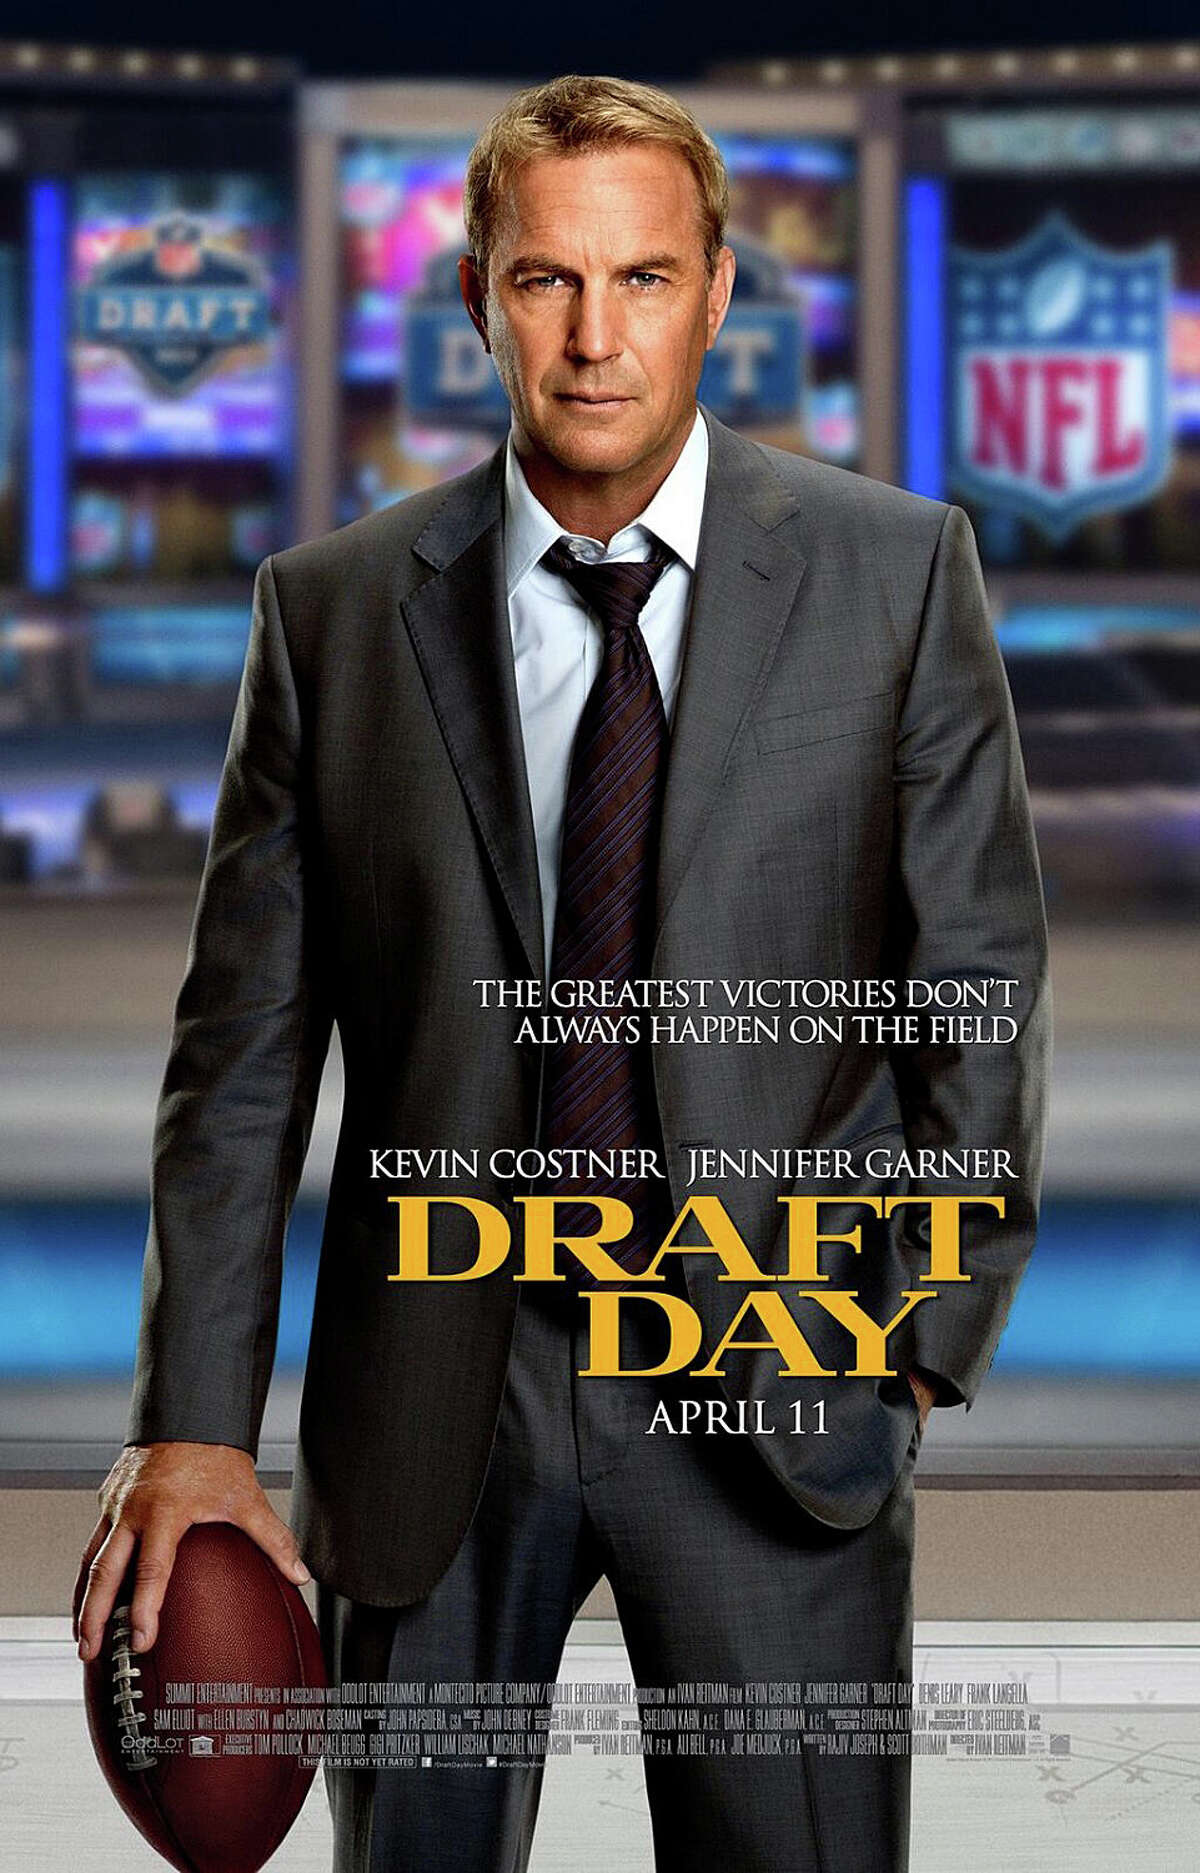 """Kevin Costner, in another of the recent roles that return him to screen prominence, stars in the football comedy-drama, """"Draft Day."""""""